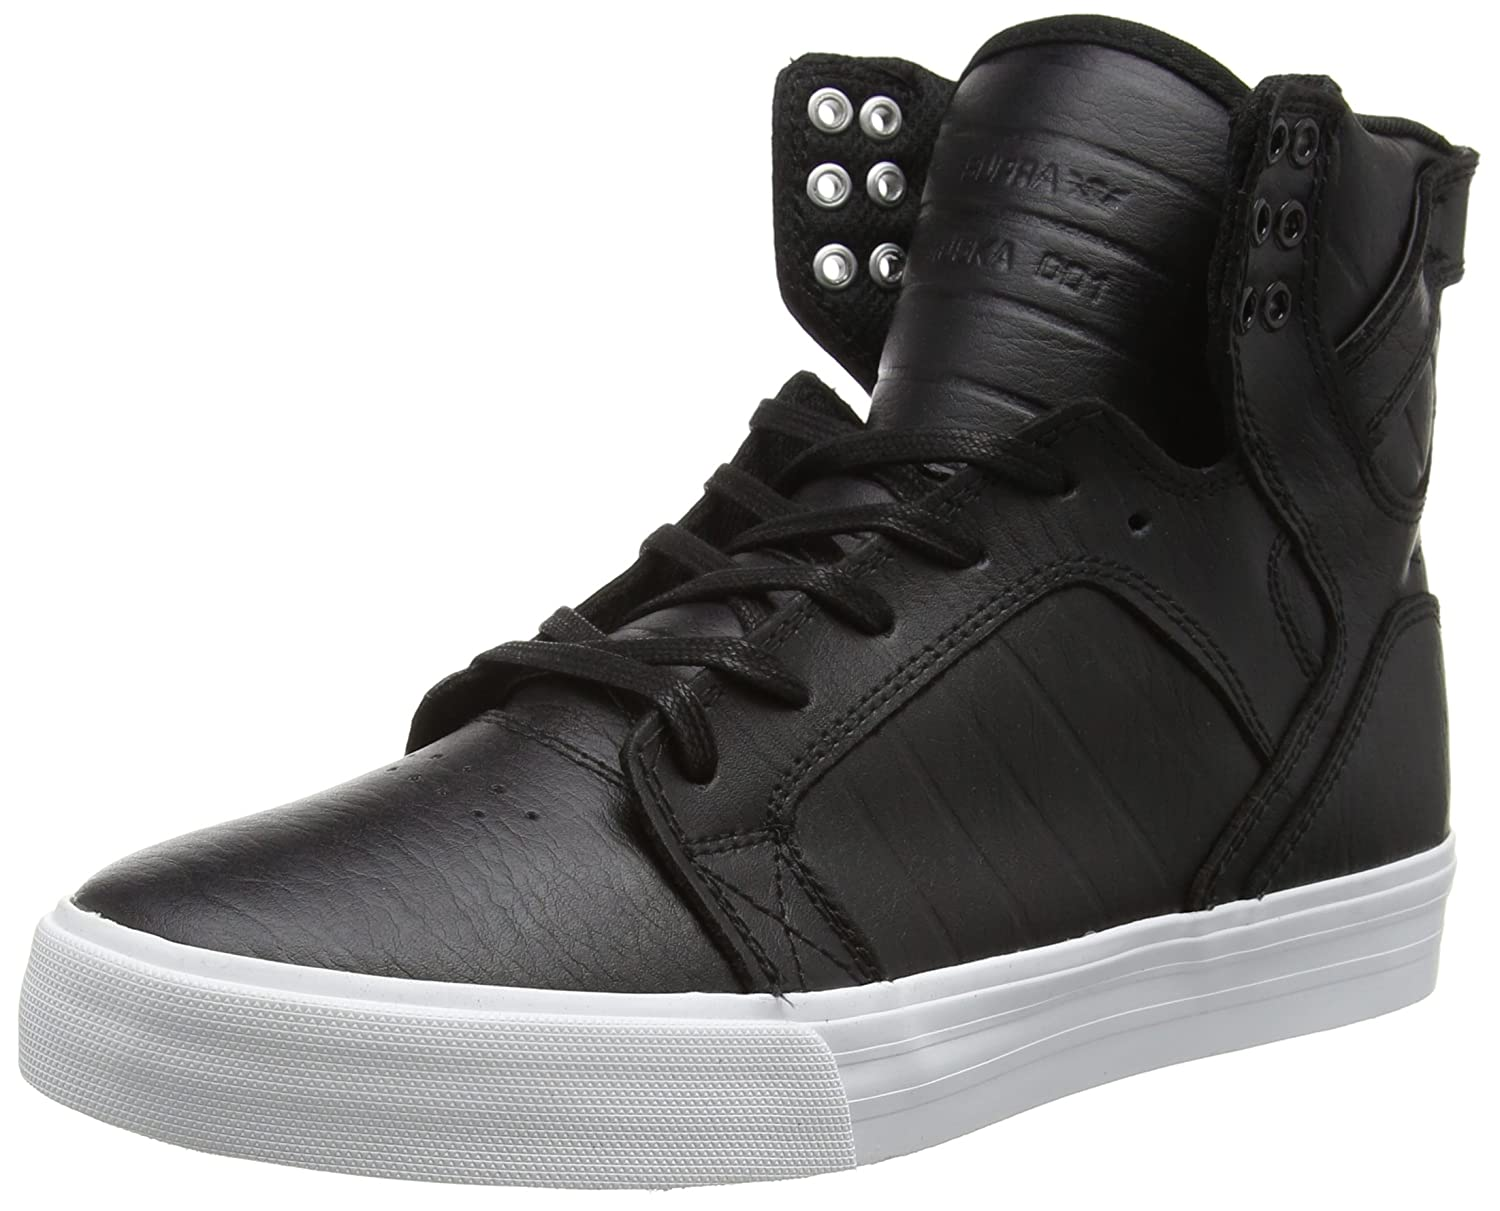 Supra Skytop Skate Shoe B016OF2V24 15 M US|Black/White